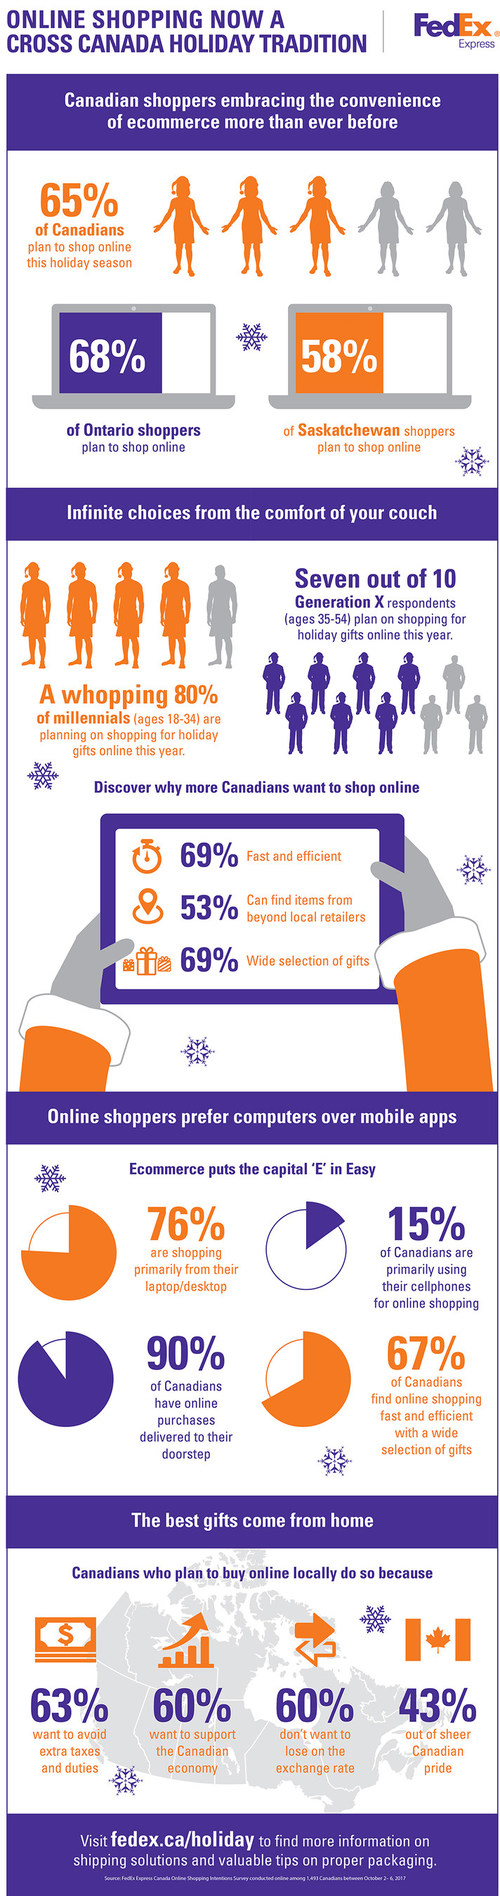 Online Shopping Now a Cross Canada Holiday Tradition (CNW Group/Federal Express Canada Ltd.)